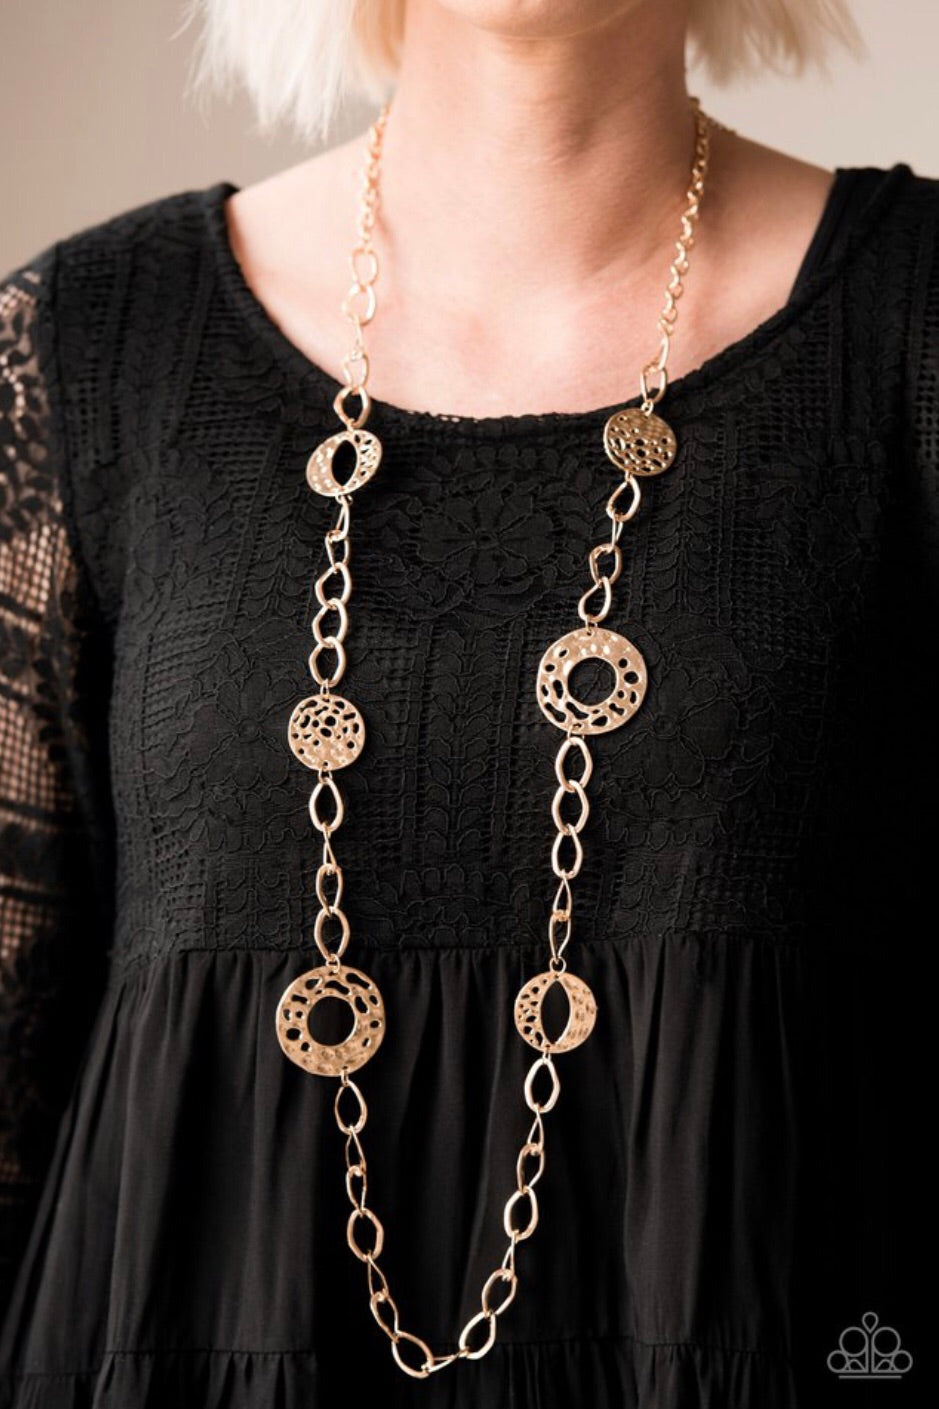 Paparazzi Jewelry Necklace Industrial Mayhem - Gold